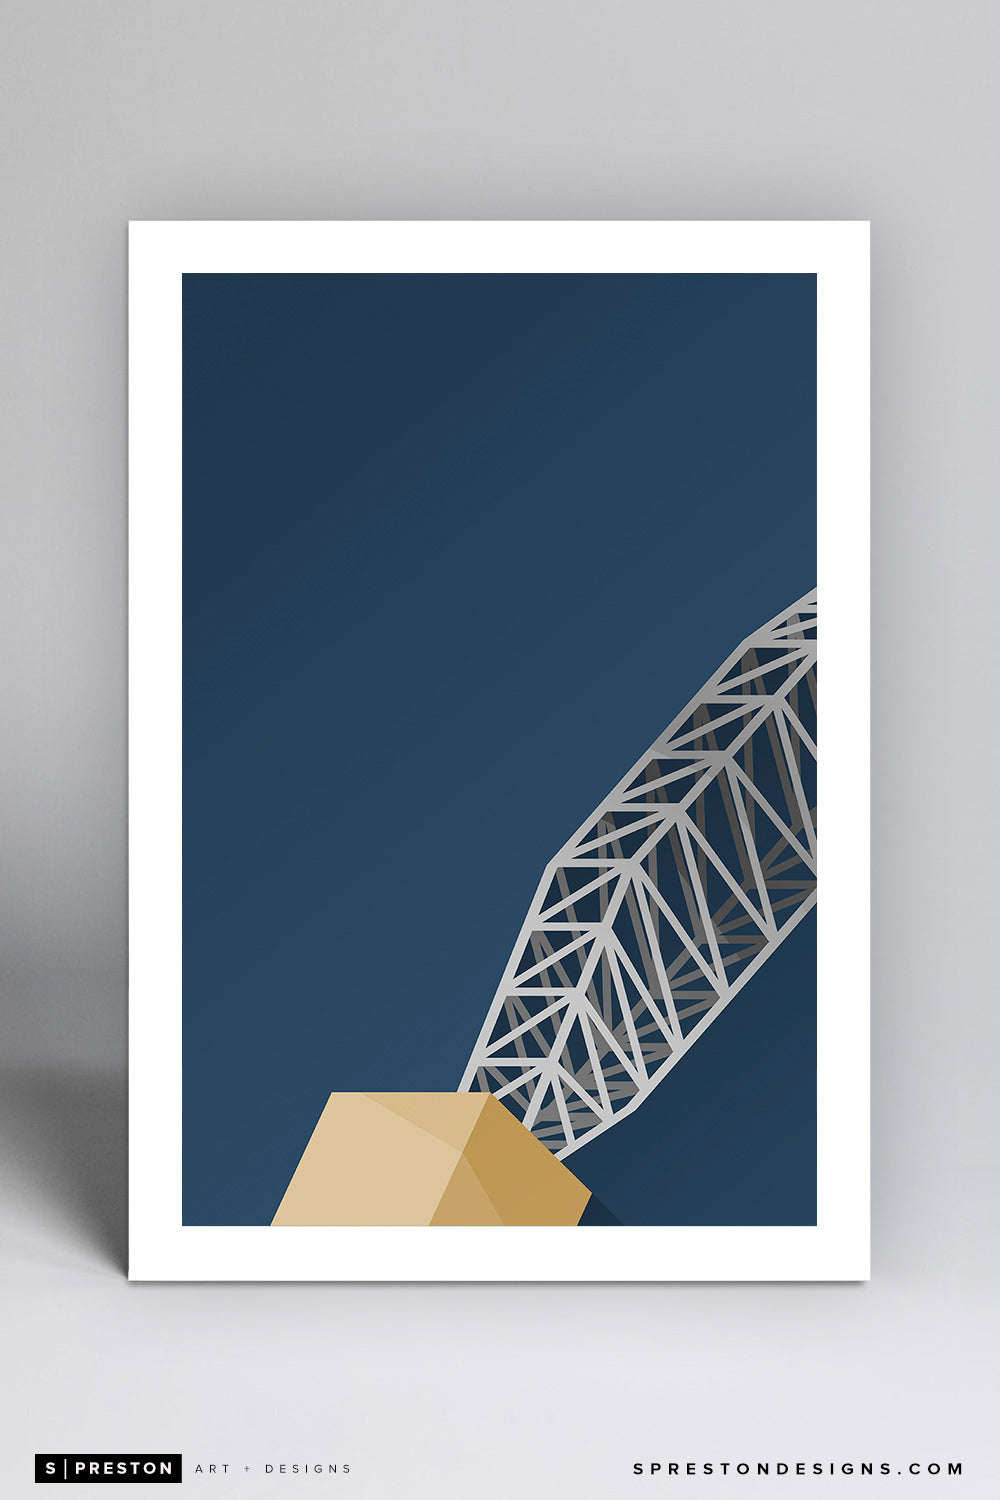 Minimalist AT&T Stadium (anchor) - Dallas Cowboys - S. Preston